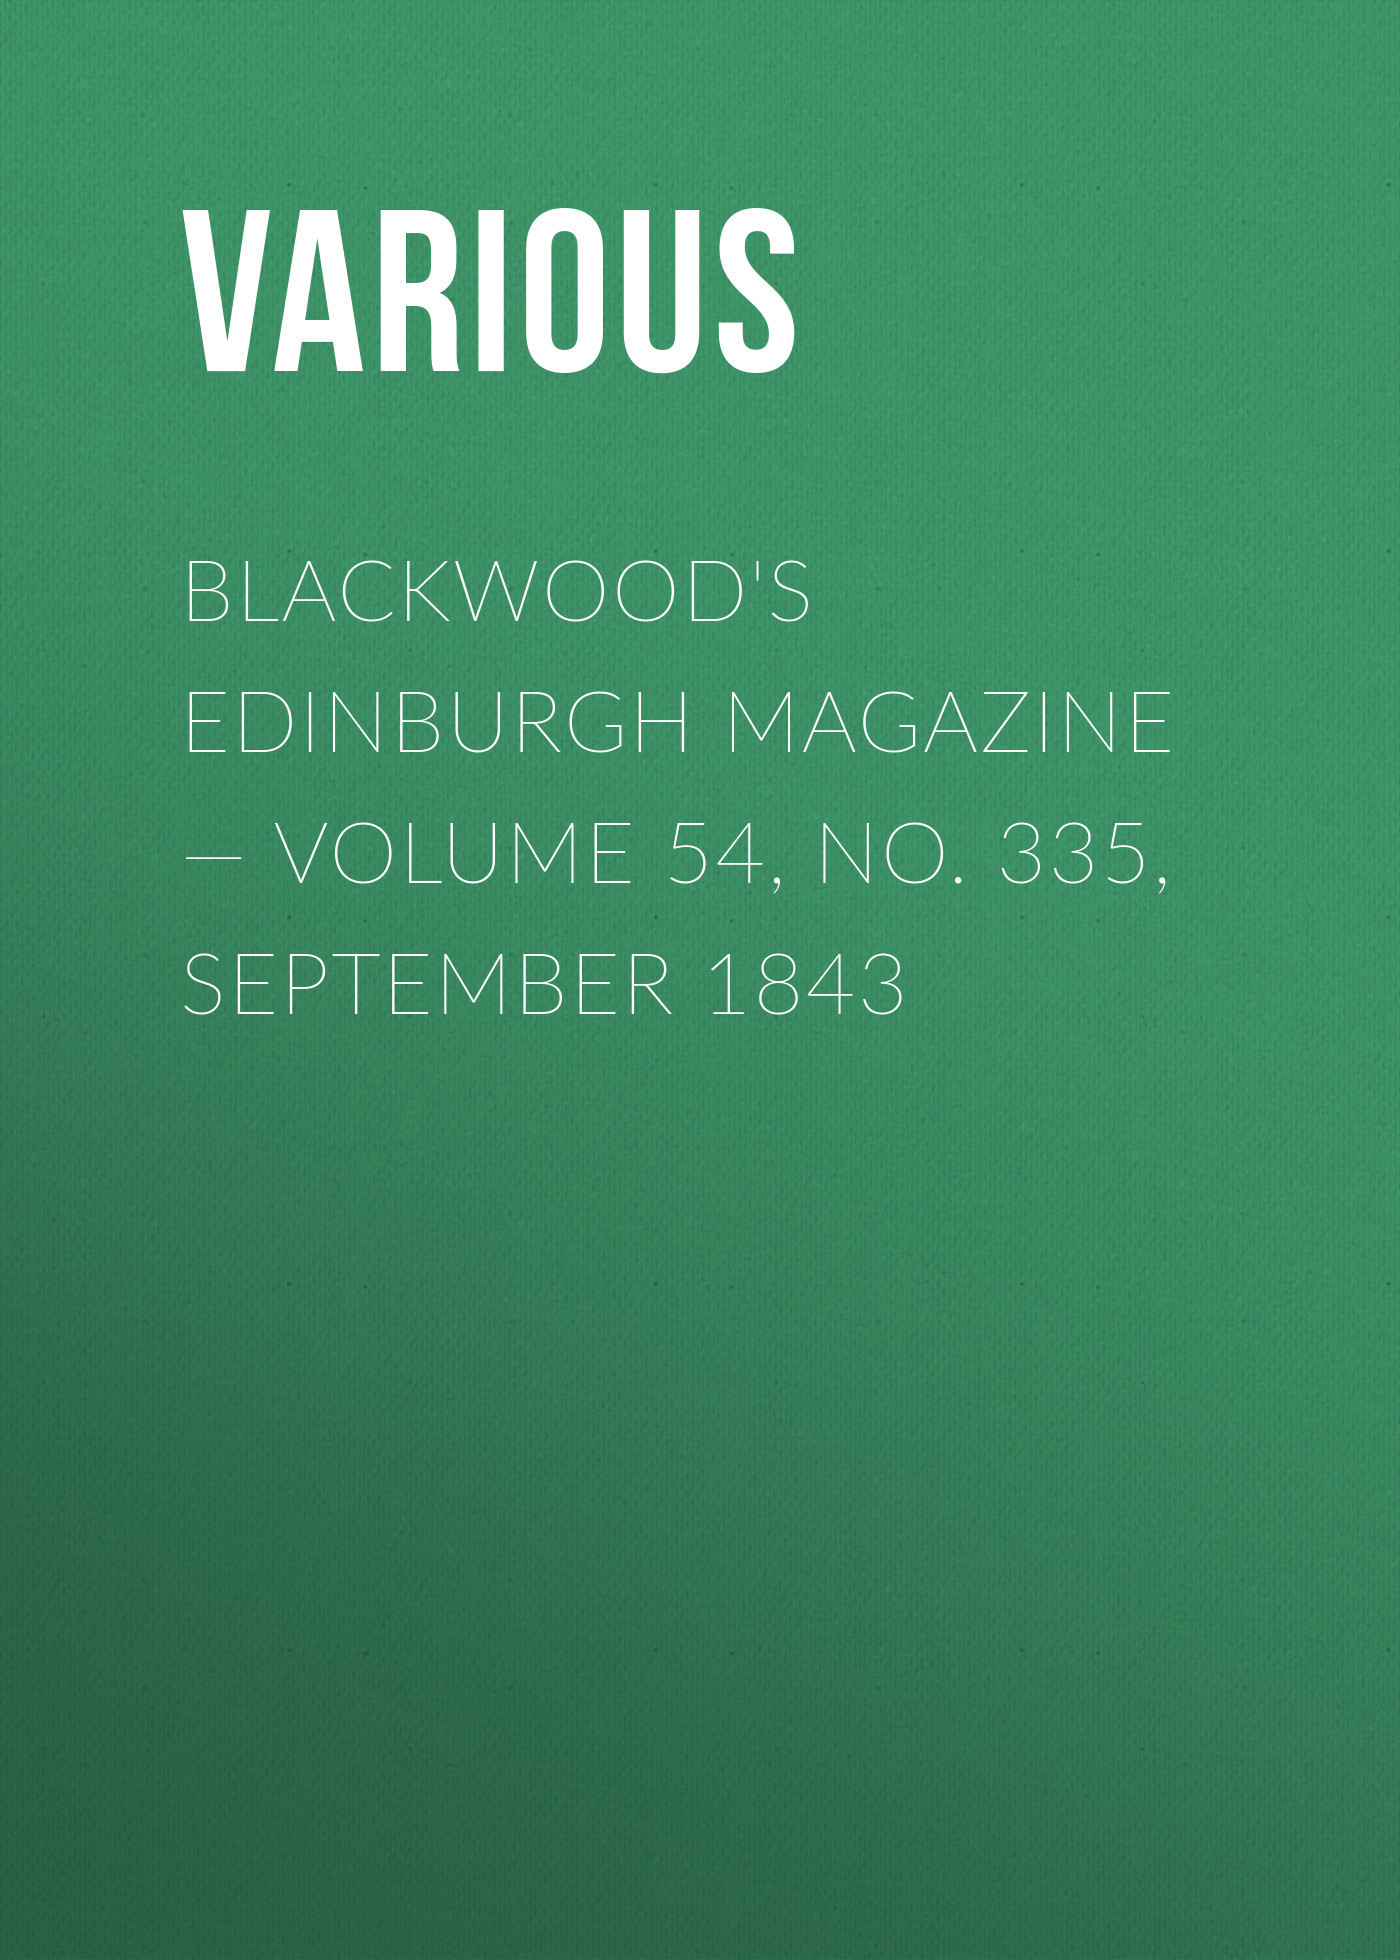 Blackwood's Edinburgh Magazine — Volume 54, No. 335, September 1843